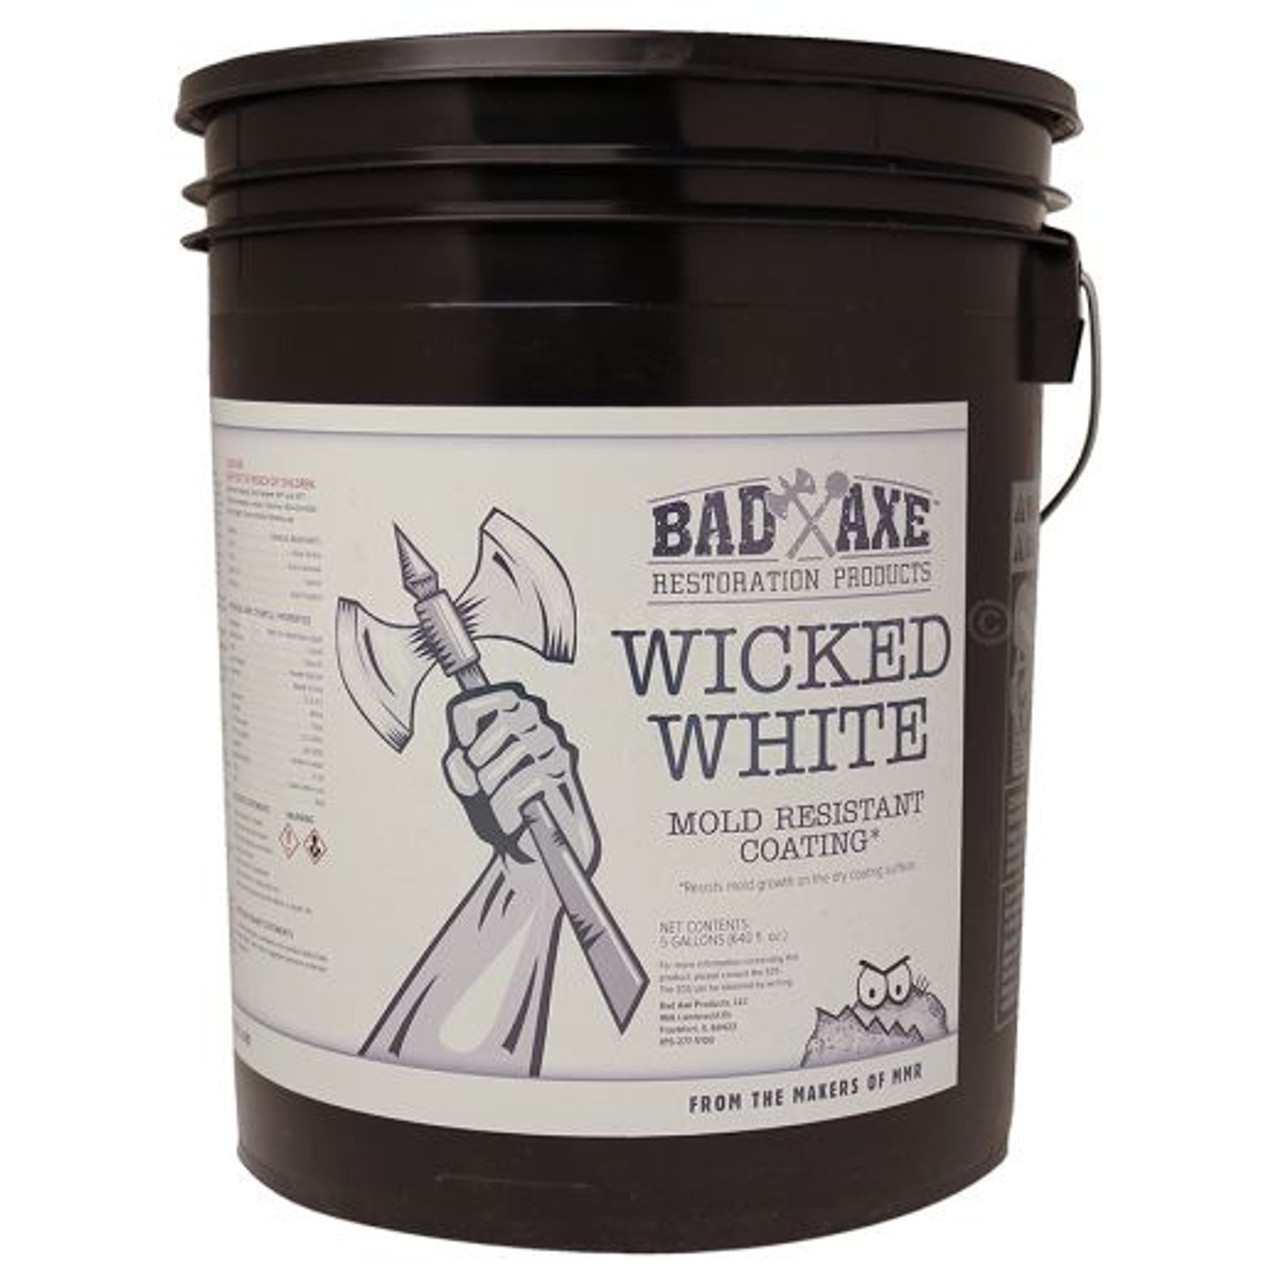 Bad Axe Wicked White, Mold Resistant Coating, White (5 GL)